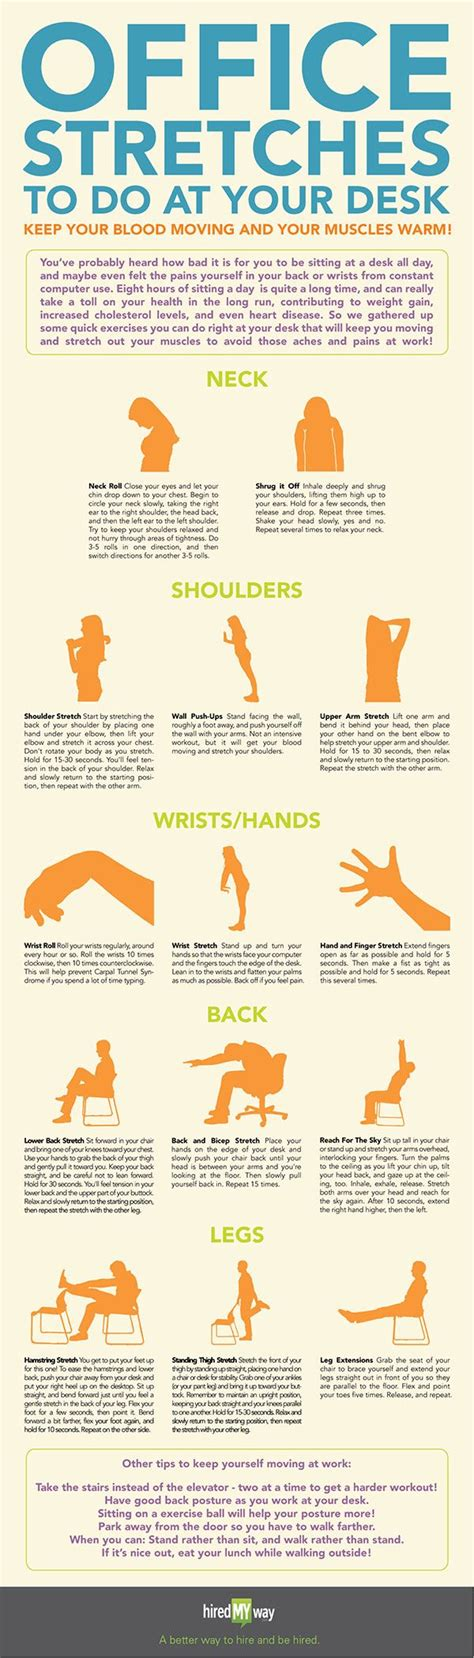 how to exercise at your desk office stretches to do at your desk infographic best